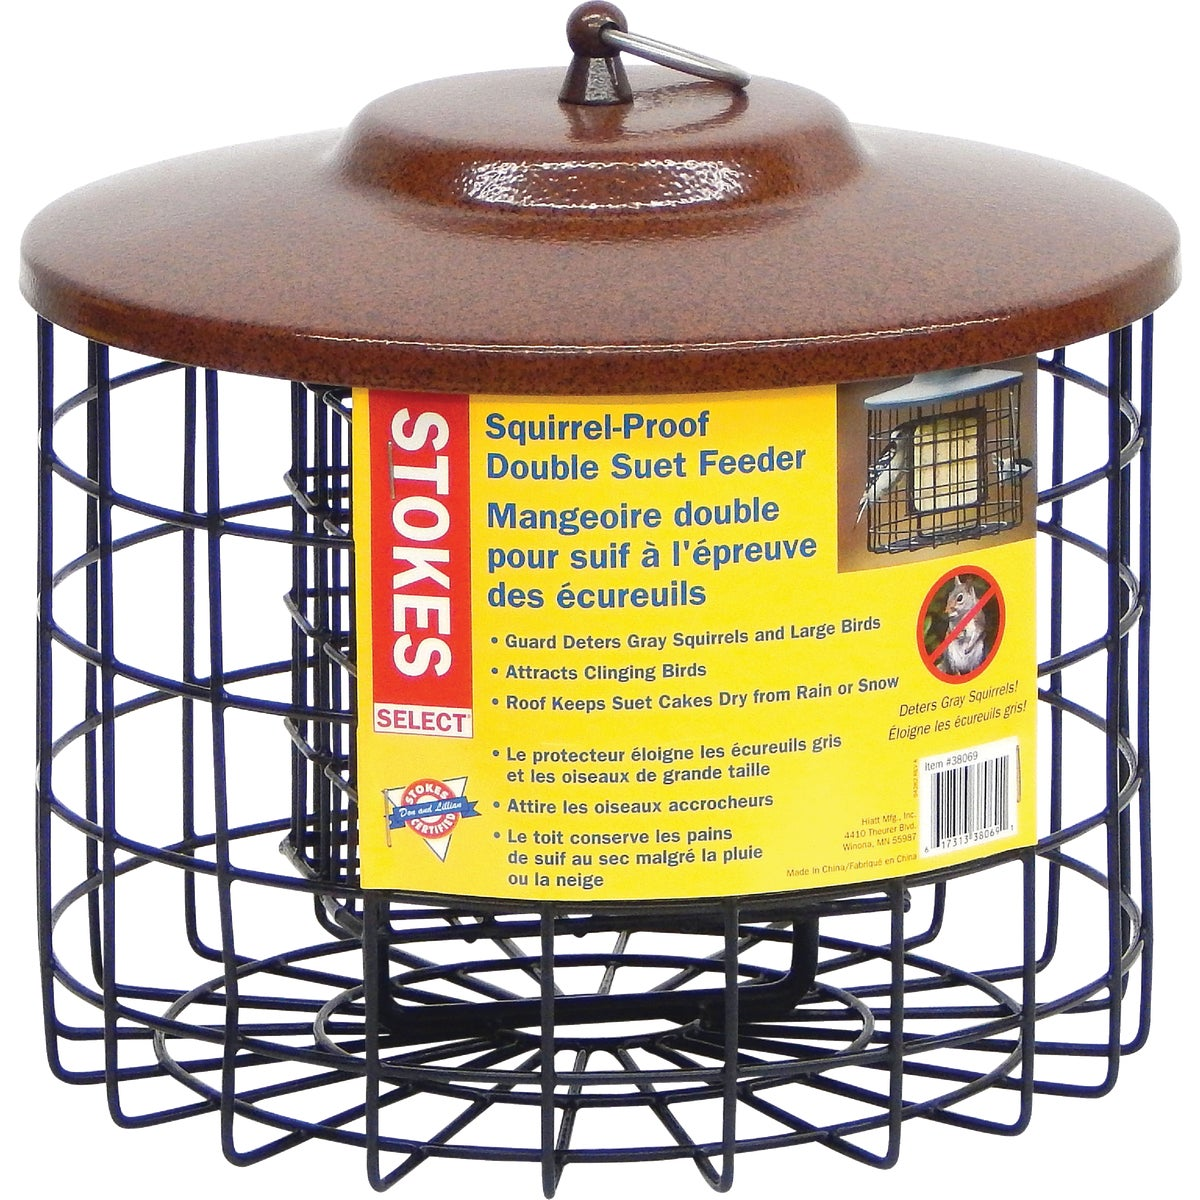 SQRL PROOF SUET FEEDER